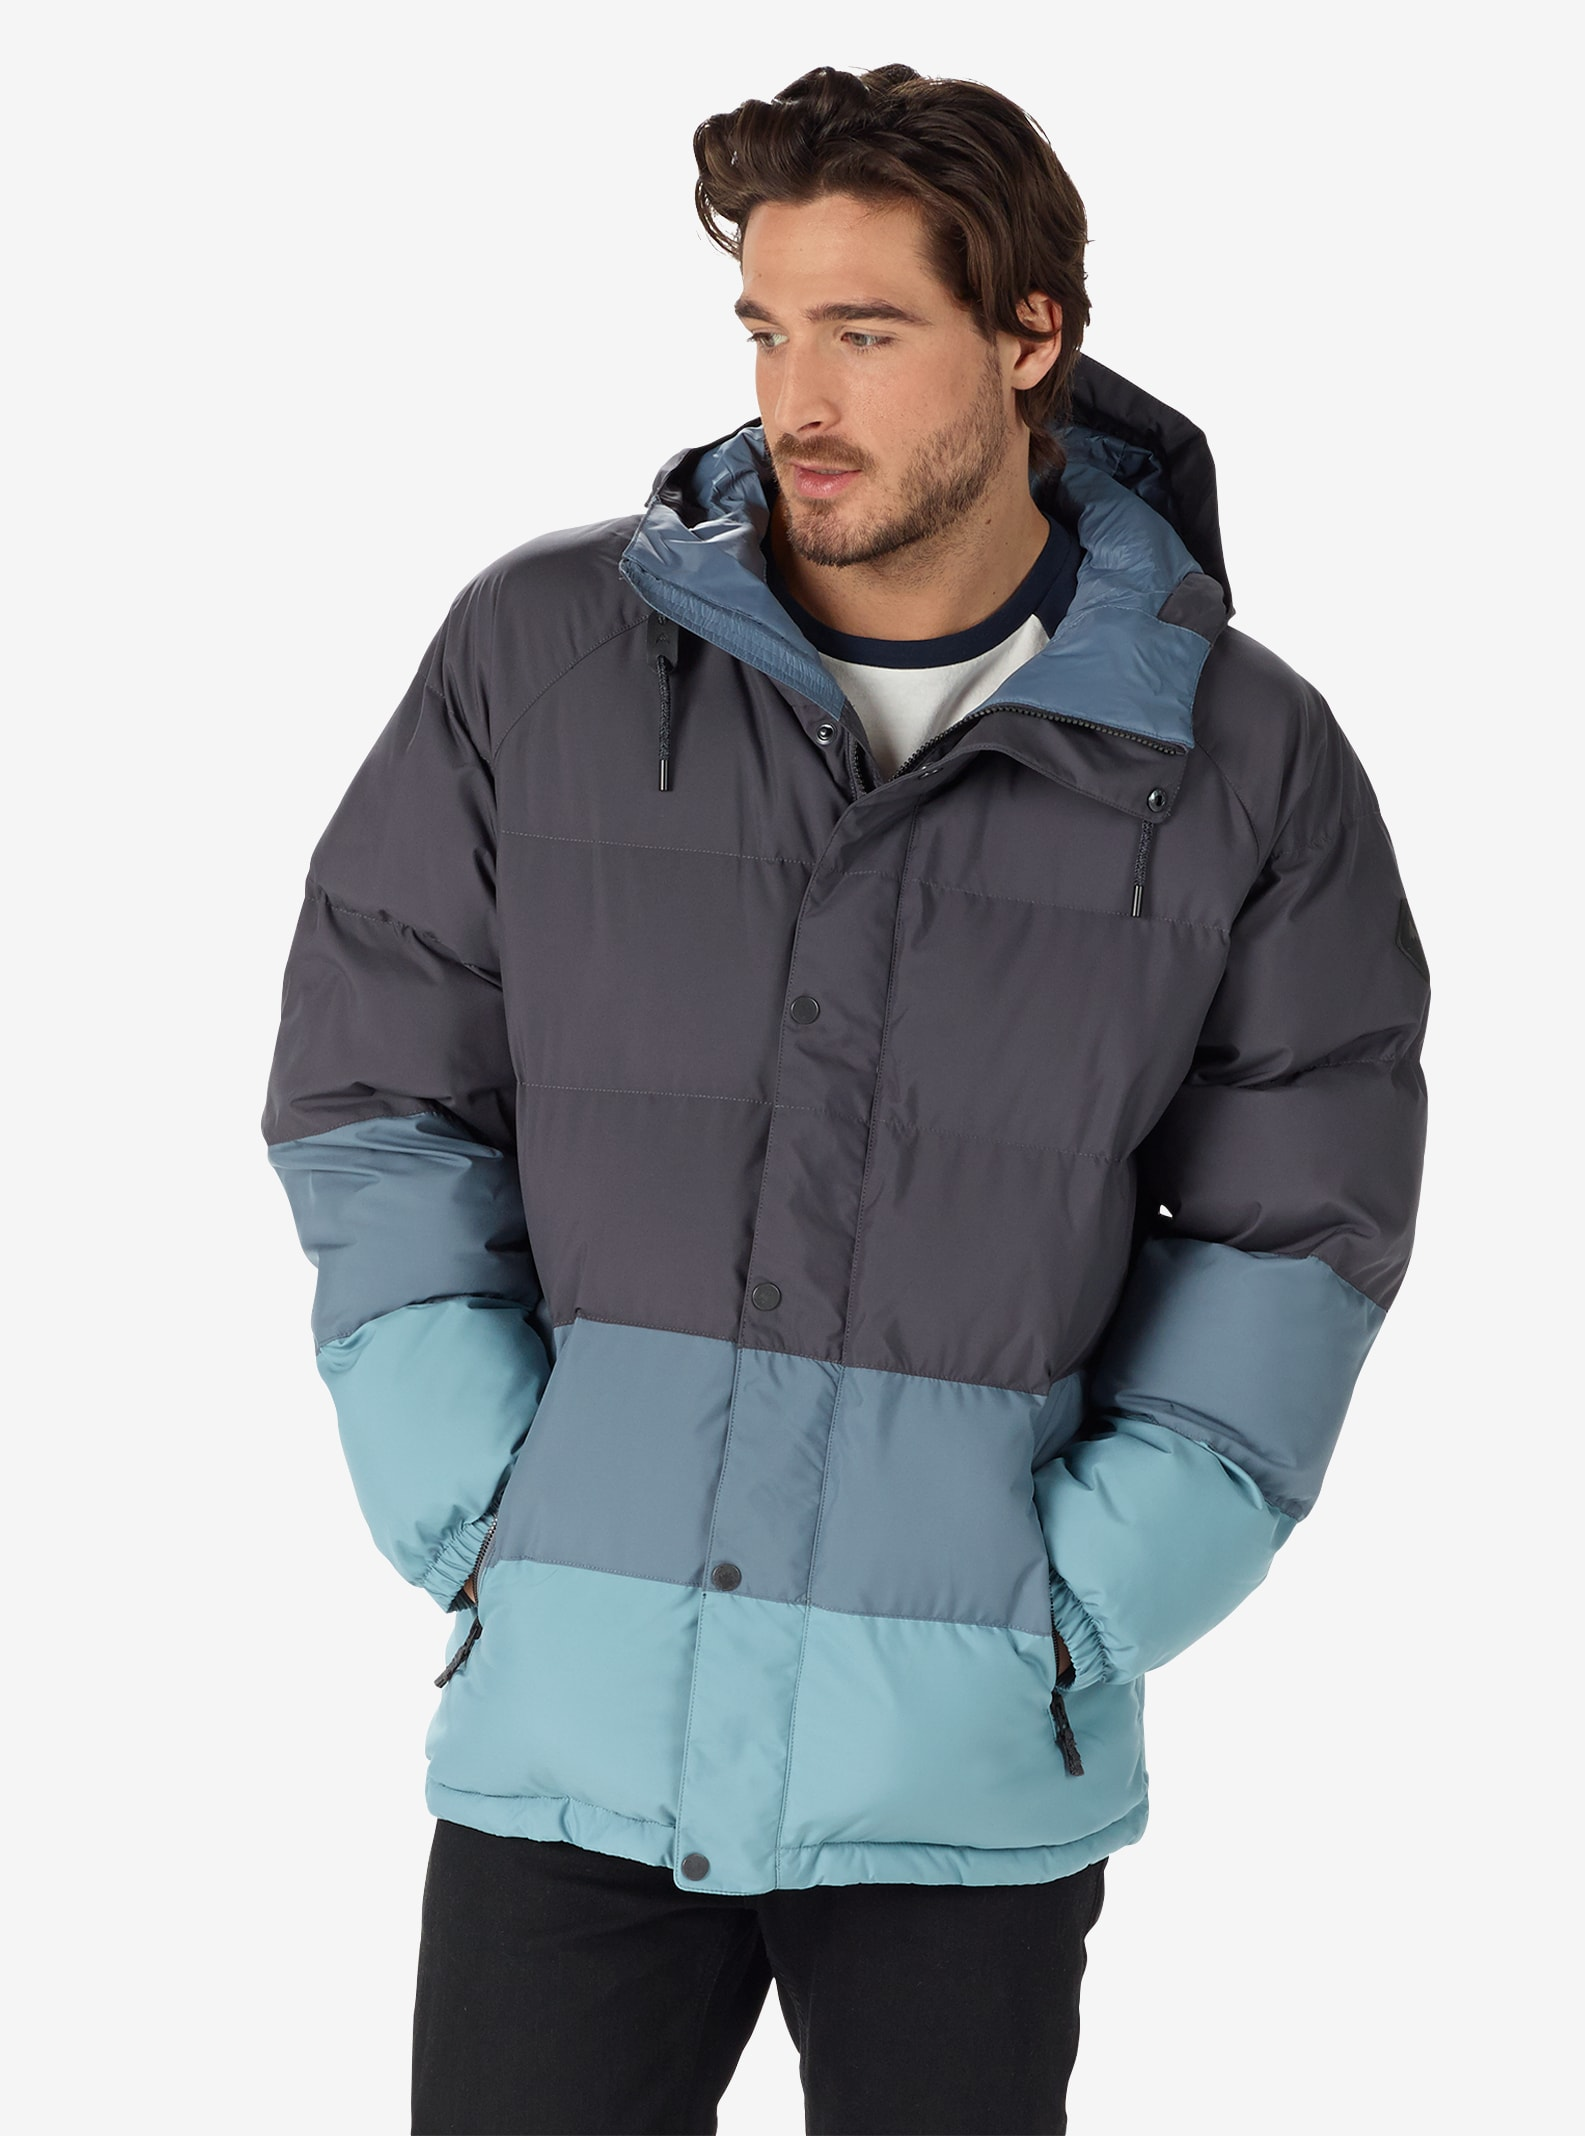 Men's Burton Traverse Jacket shown in Faded / LA Sky / Winter Sky